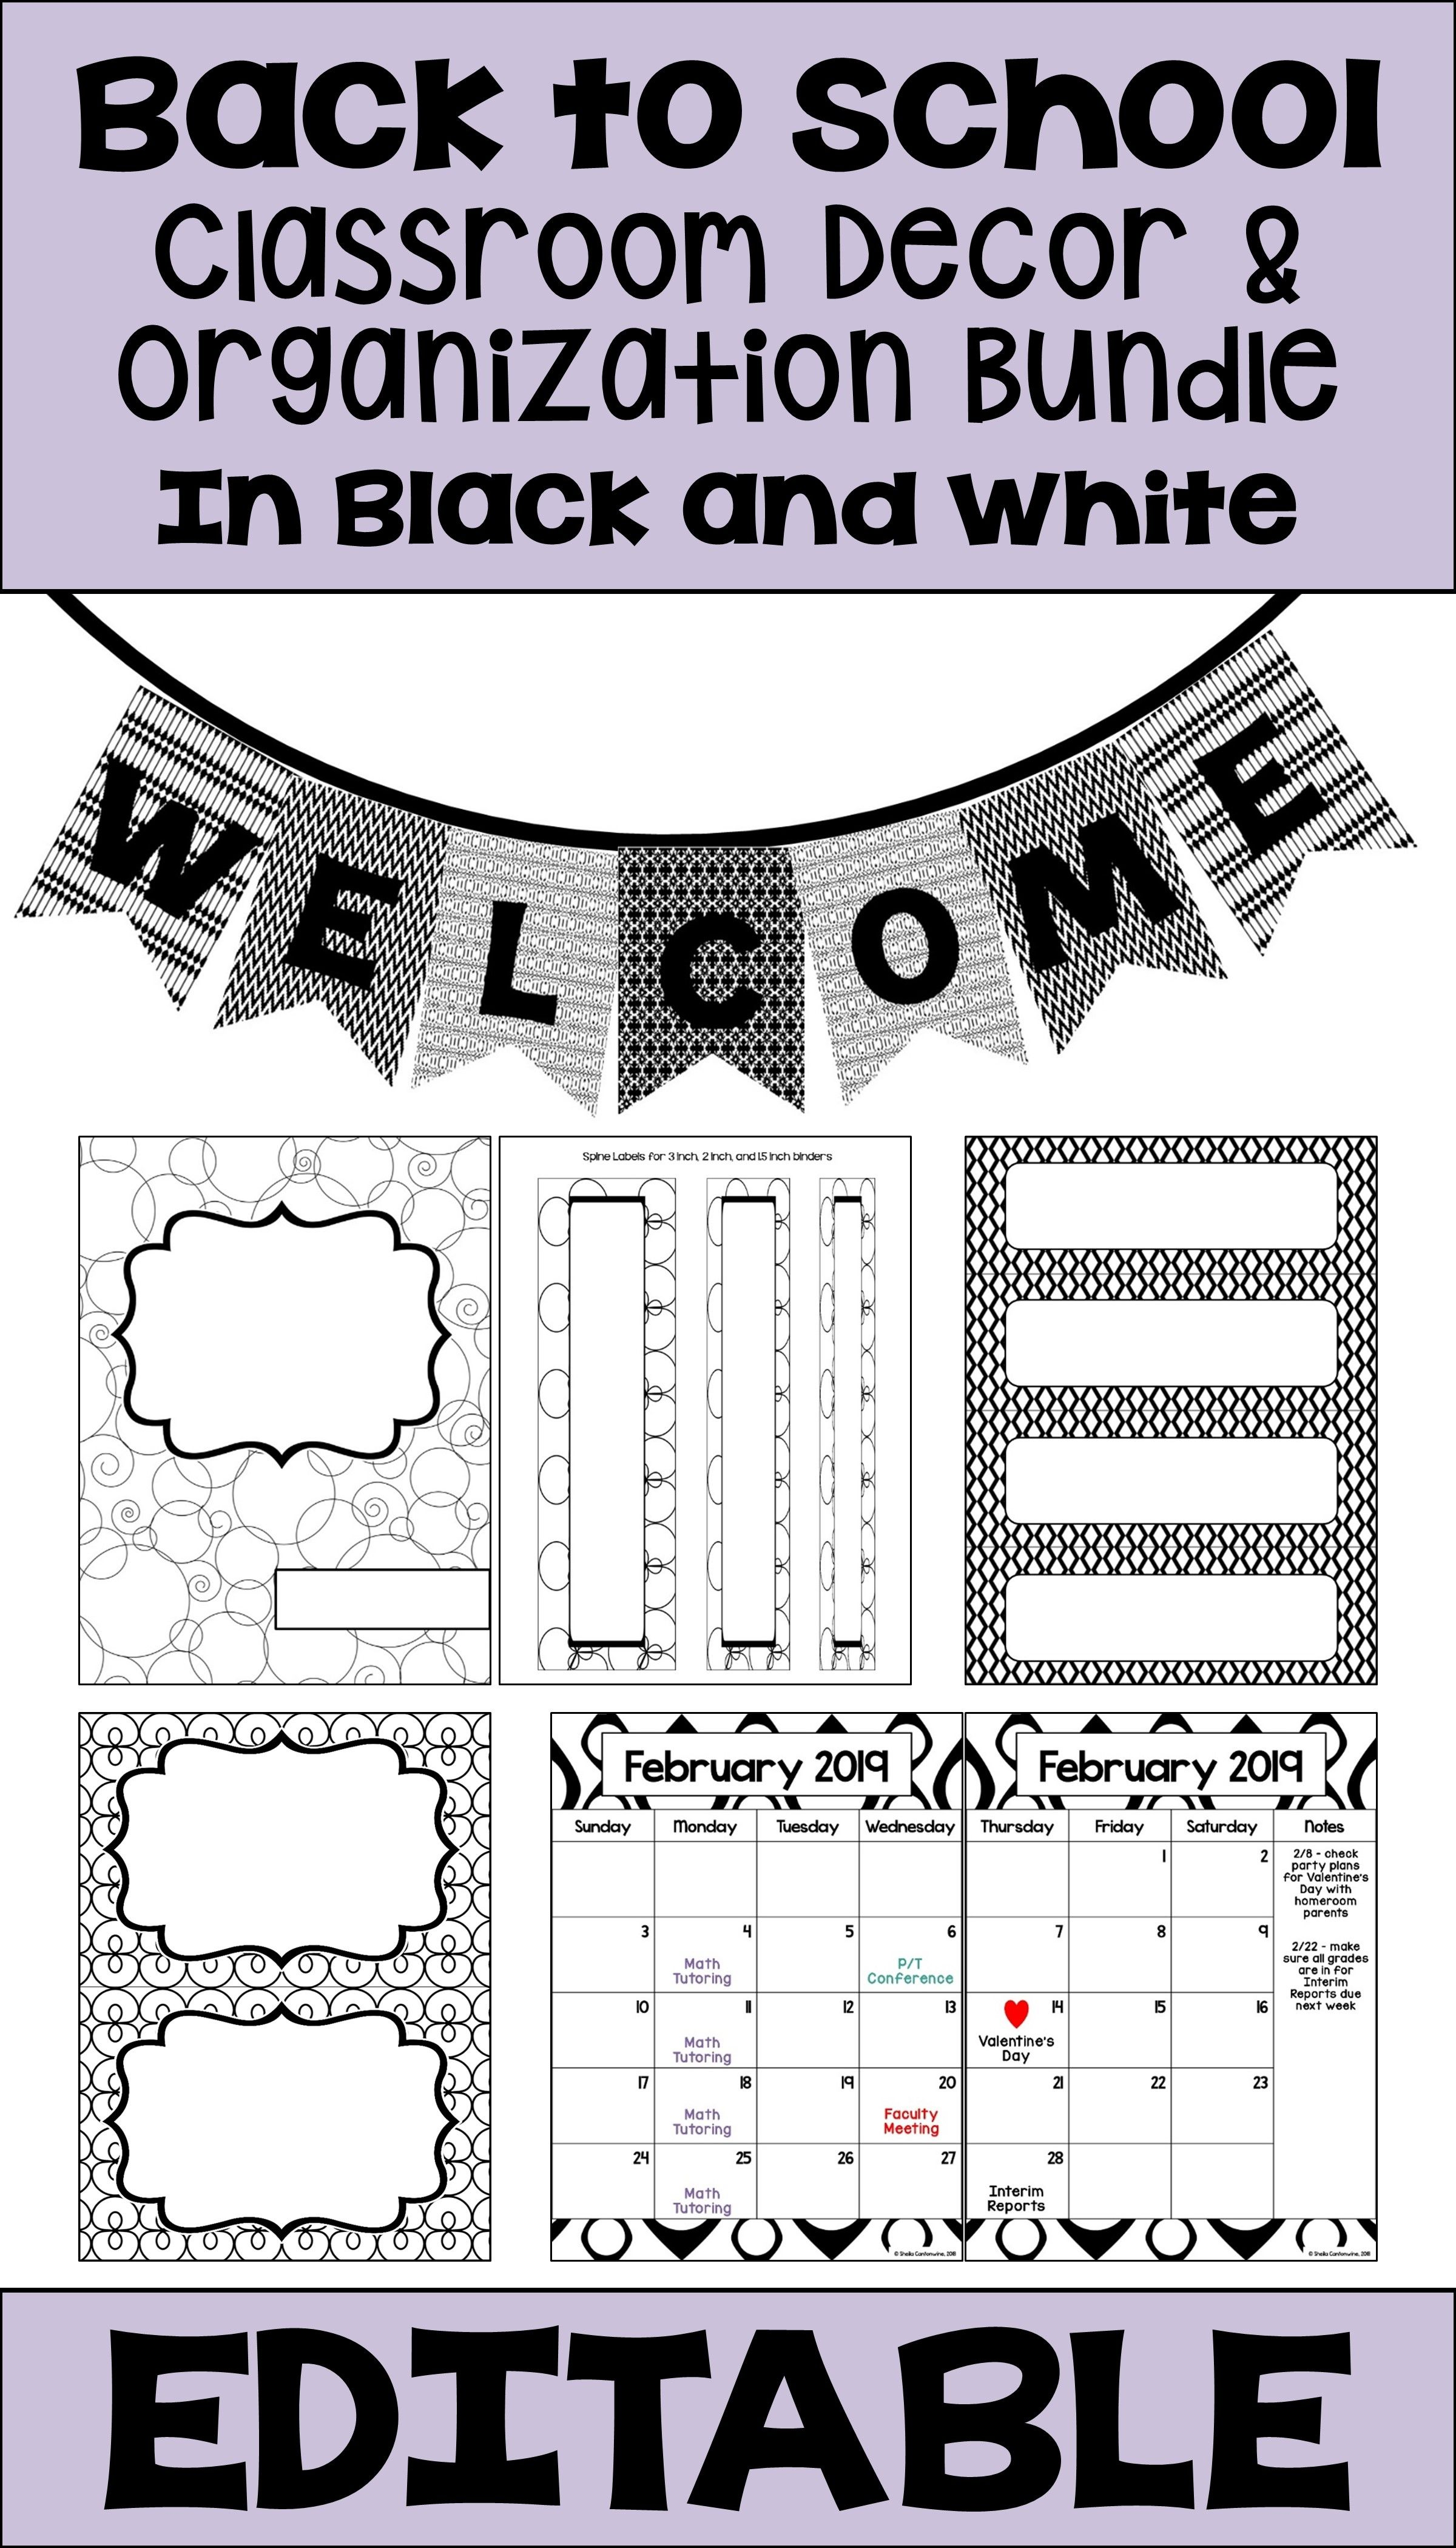 back to school editable classroom organization and decor bundle